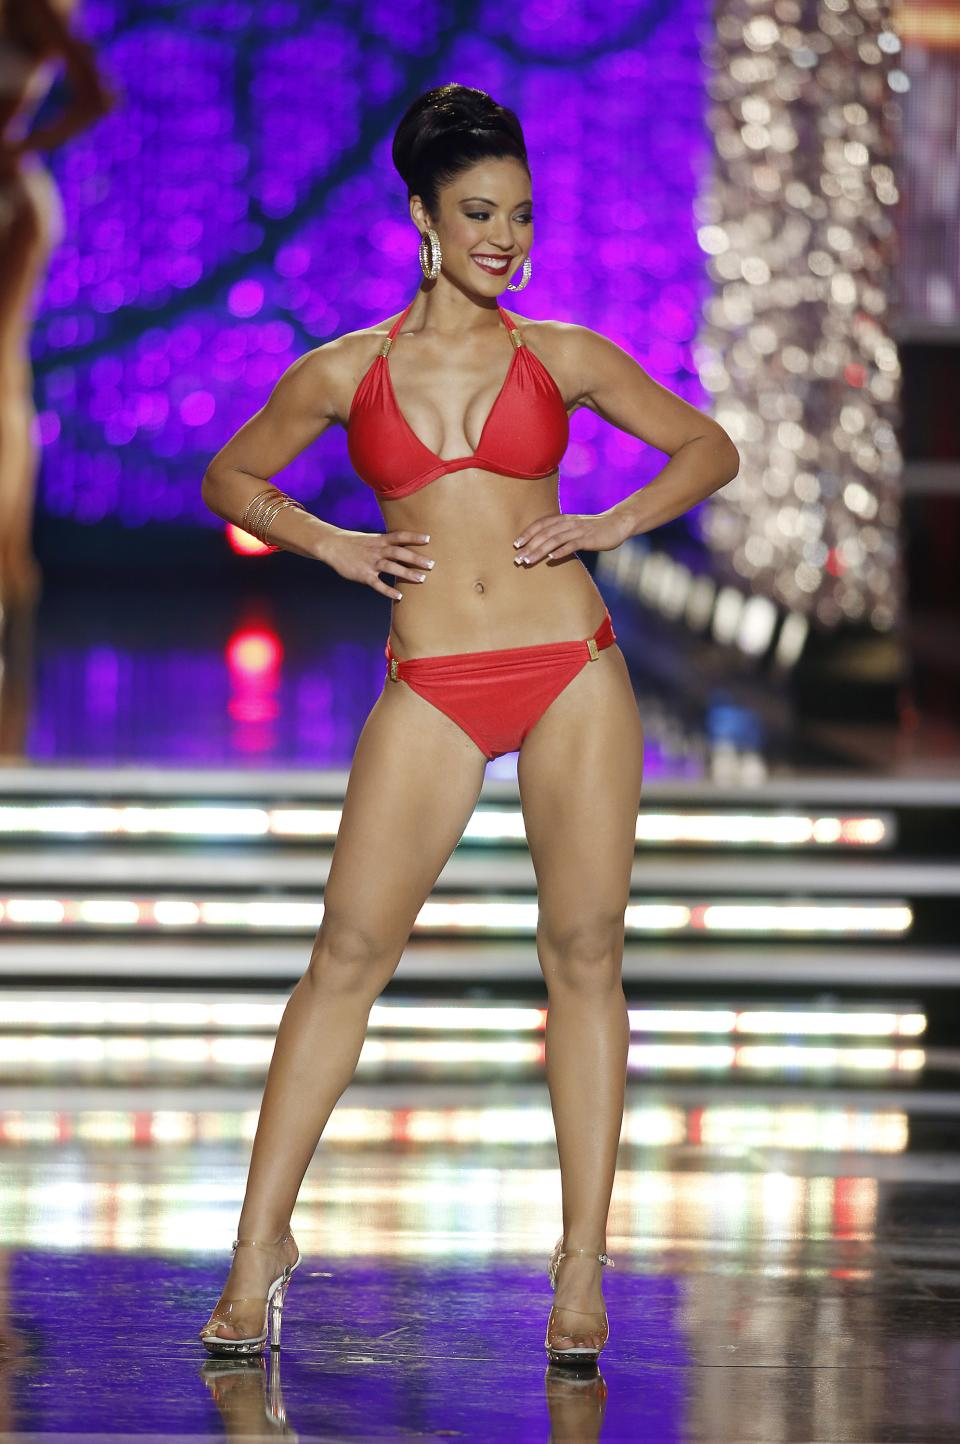 Miss Iowa Mariah Cary competes in the swimsuit portion of the Miss America 2013 pageant on Saturday, Jan. 12, 2013, in Las Vegas. (AP Photo/Isaac Brekken)